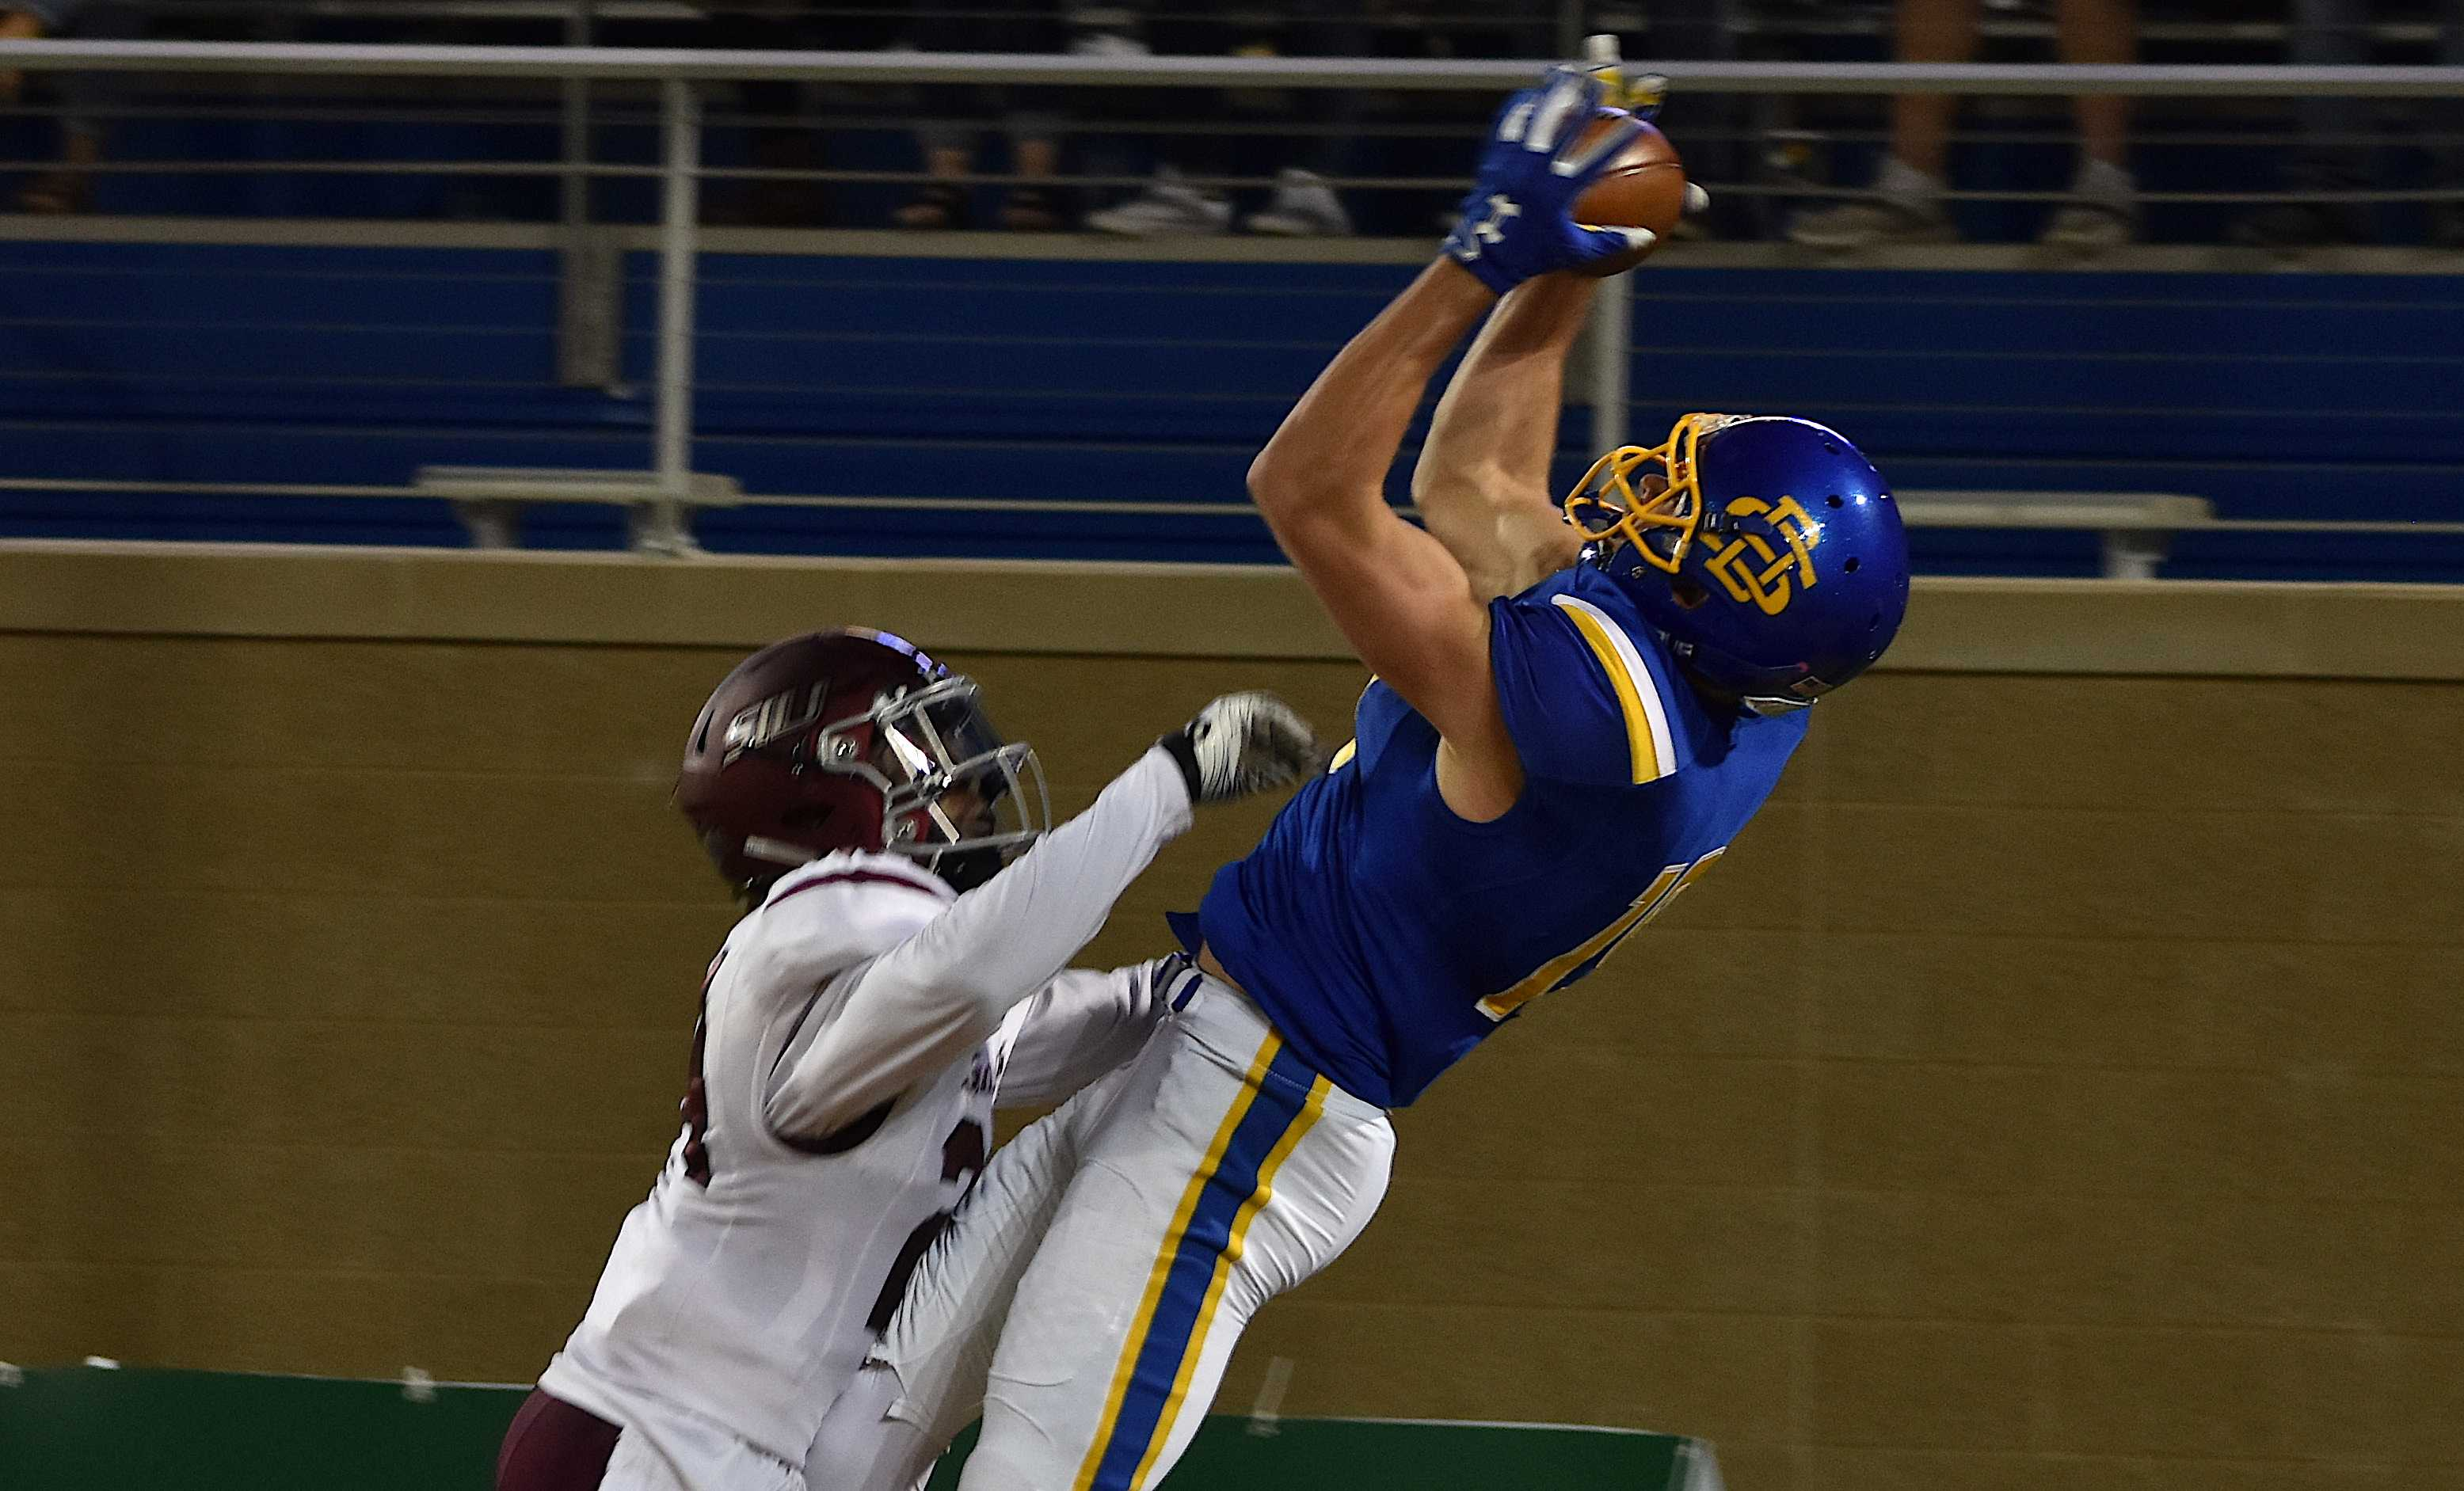 ABBY FULLENKAMP Senior wide receiver Jake Wieneke catches a touchdown pass during a 49-14 win over Southern Illinois. The Jacks host Northern Iowa in the Hobo Day game Saturday.